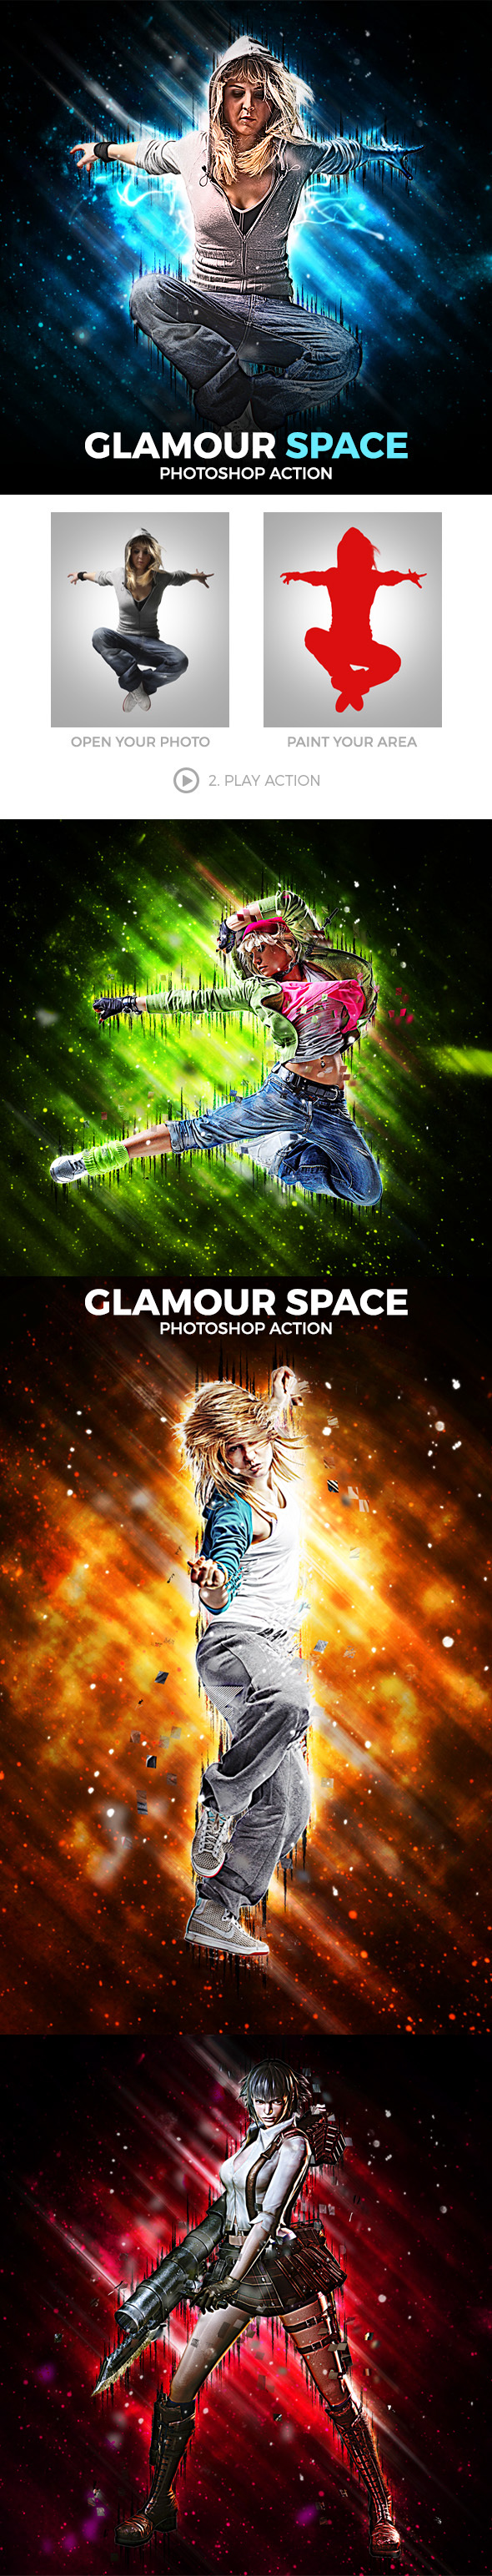 Glamour Space Photoshop Action - Photo Effects Actions